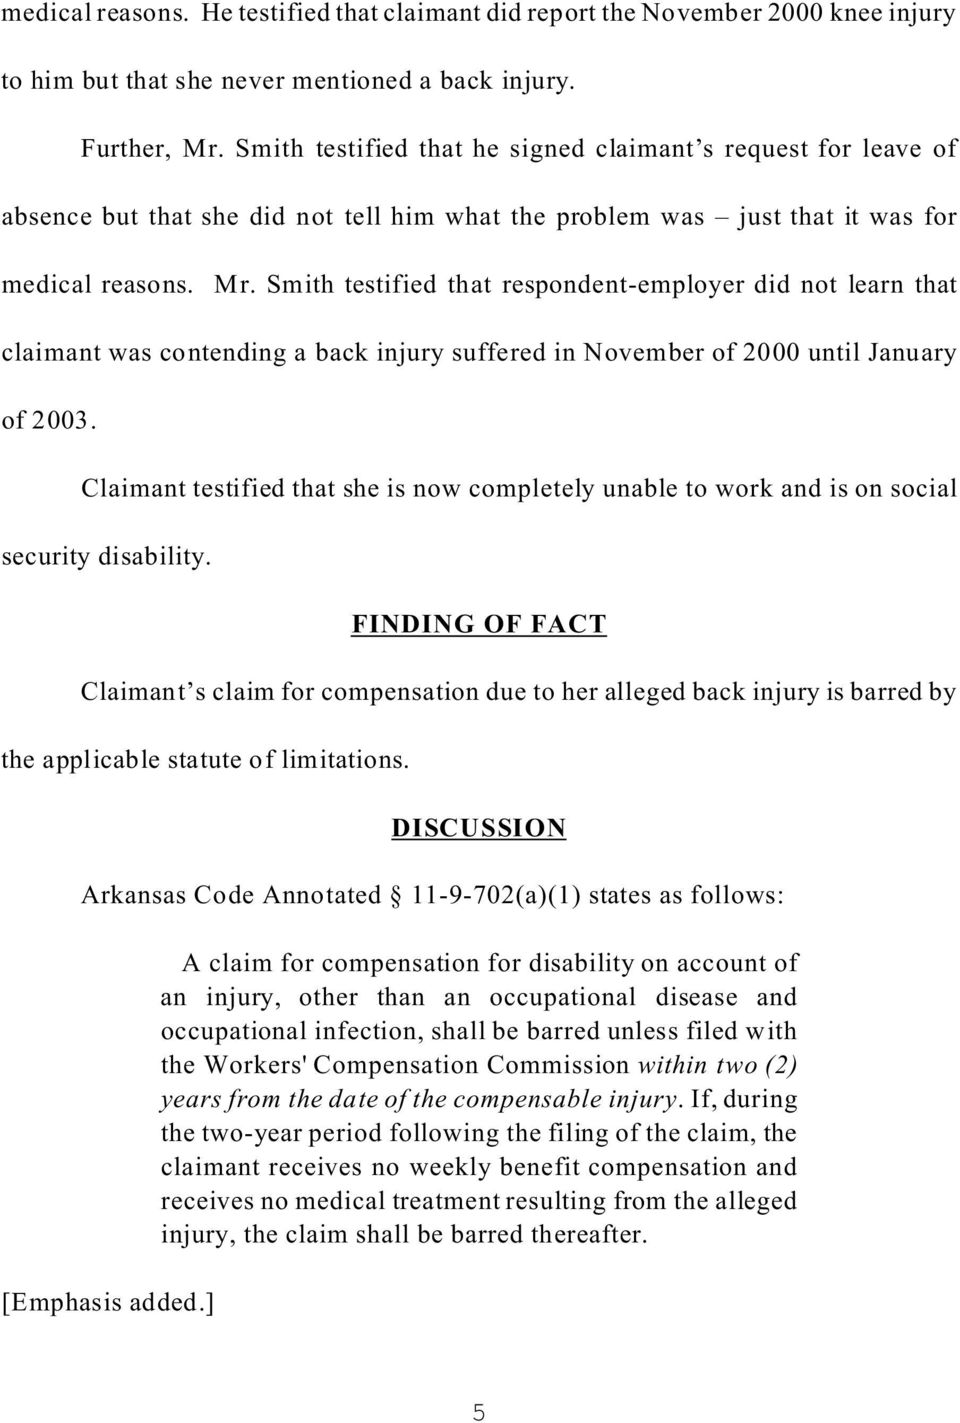 Smith testified that respondent-employer did not learn that claimant was contending a back injury suffered in November of 2000 until January of 2003.